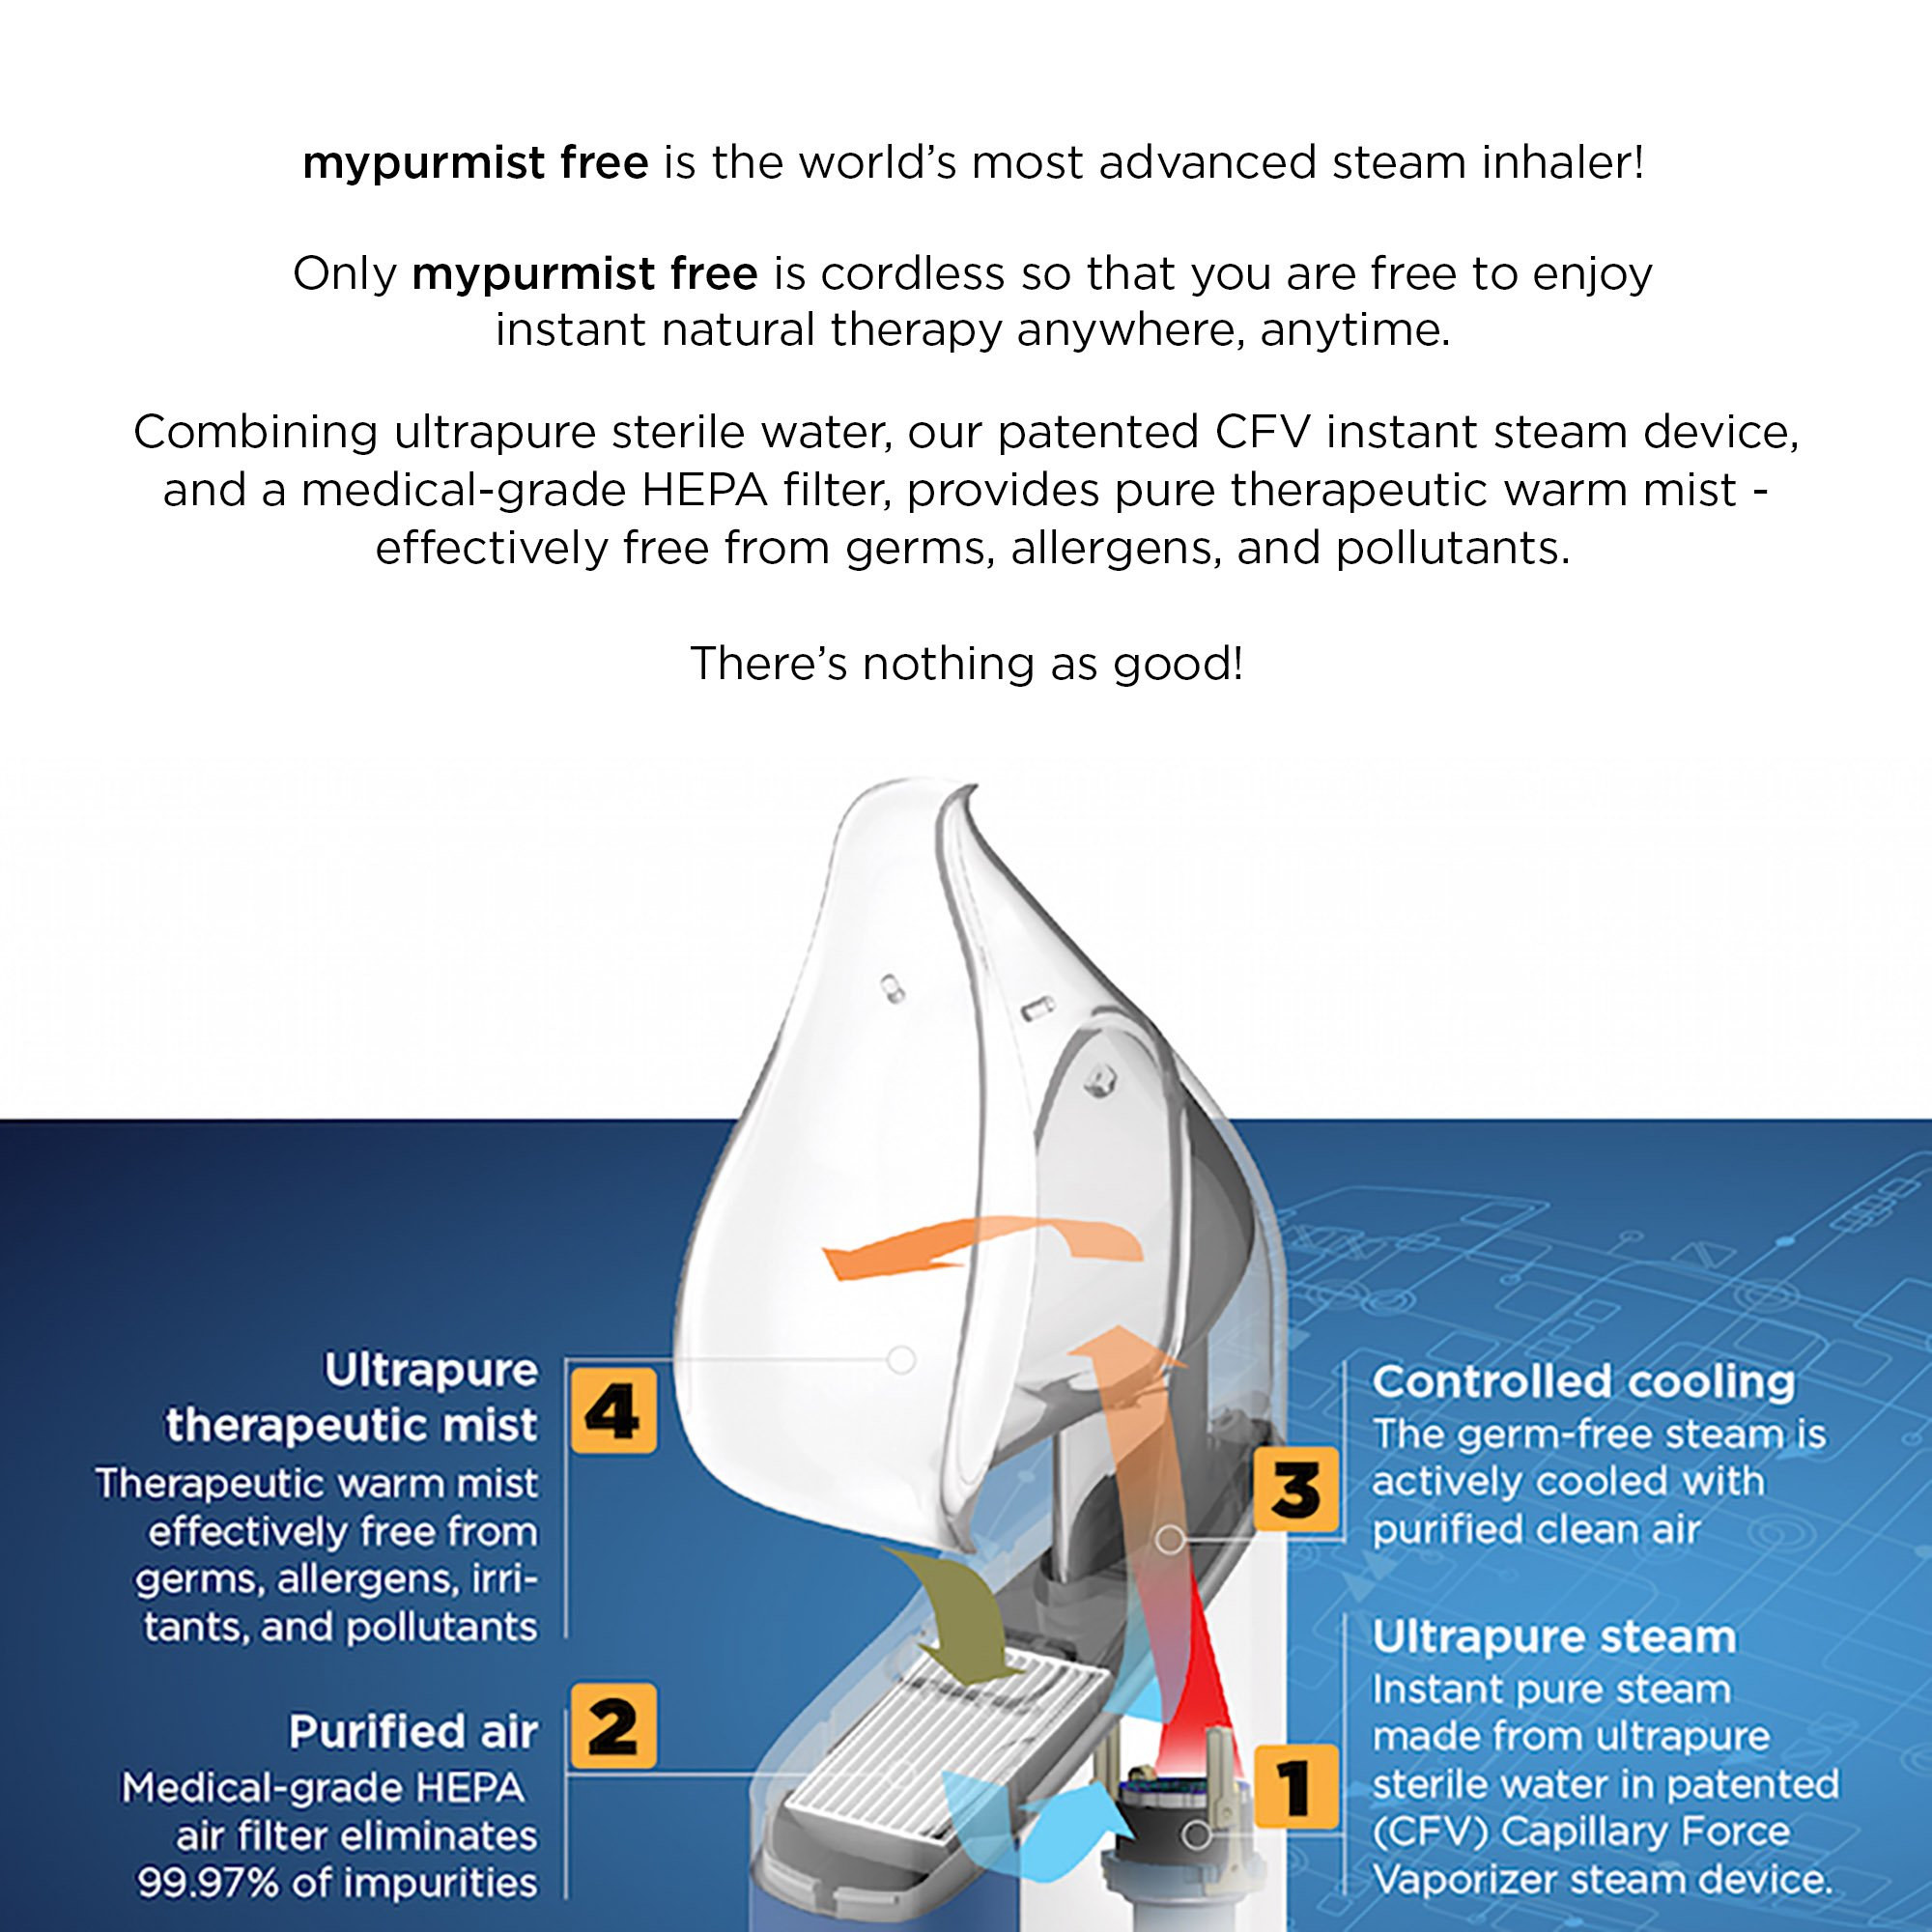 New Cordless Mypurmist Free - Ultrapure Handheld Steam Inhaler and Vaporizer (Mypurmist Free Kit). Fast Natural Relief from Sinus Congestion, Colds and Allergies by MyPurMist (Image #3)